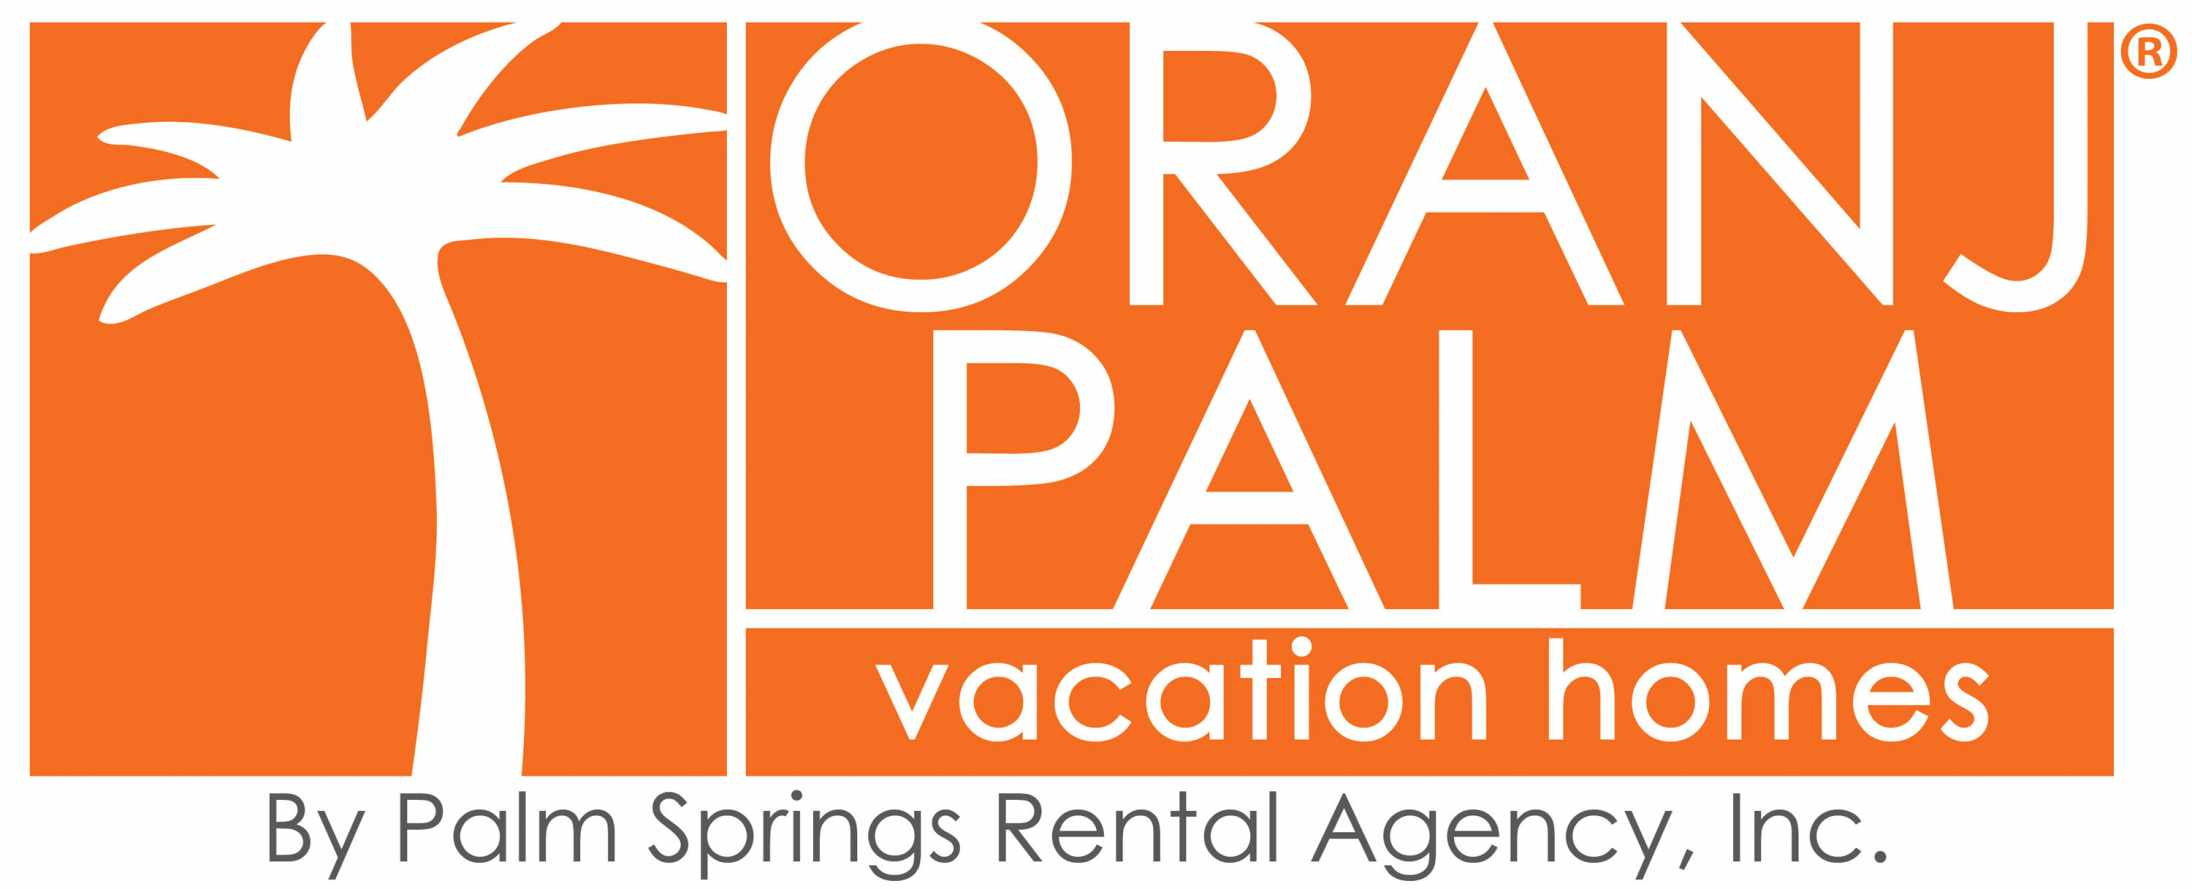 Palm Springs Rental Agency - Vacation Homes Logo